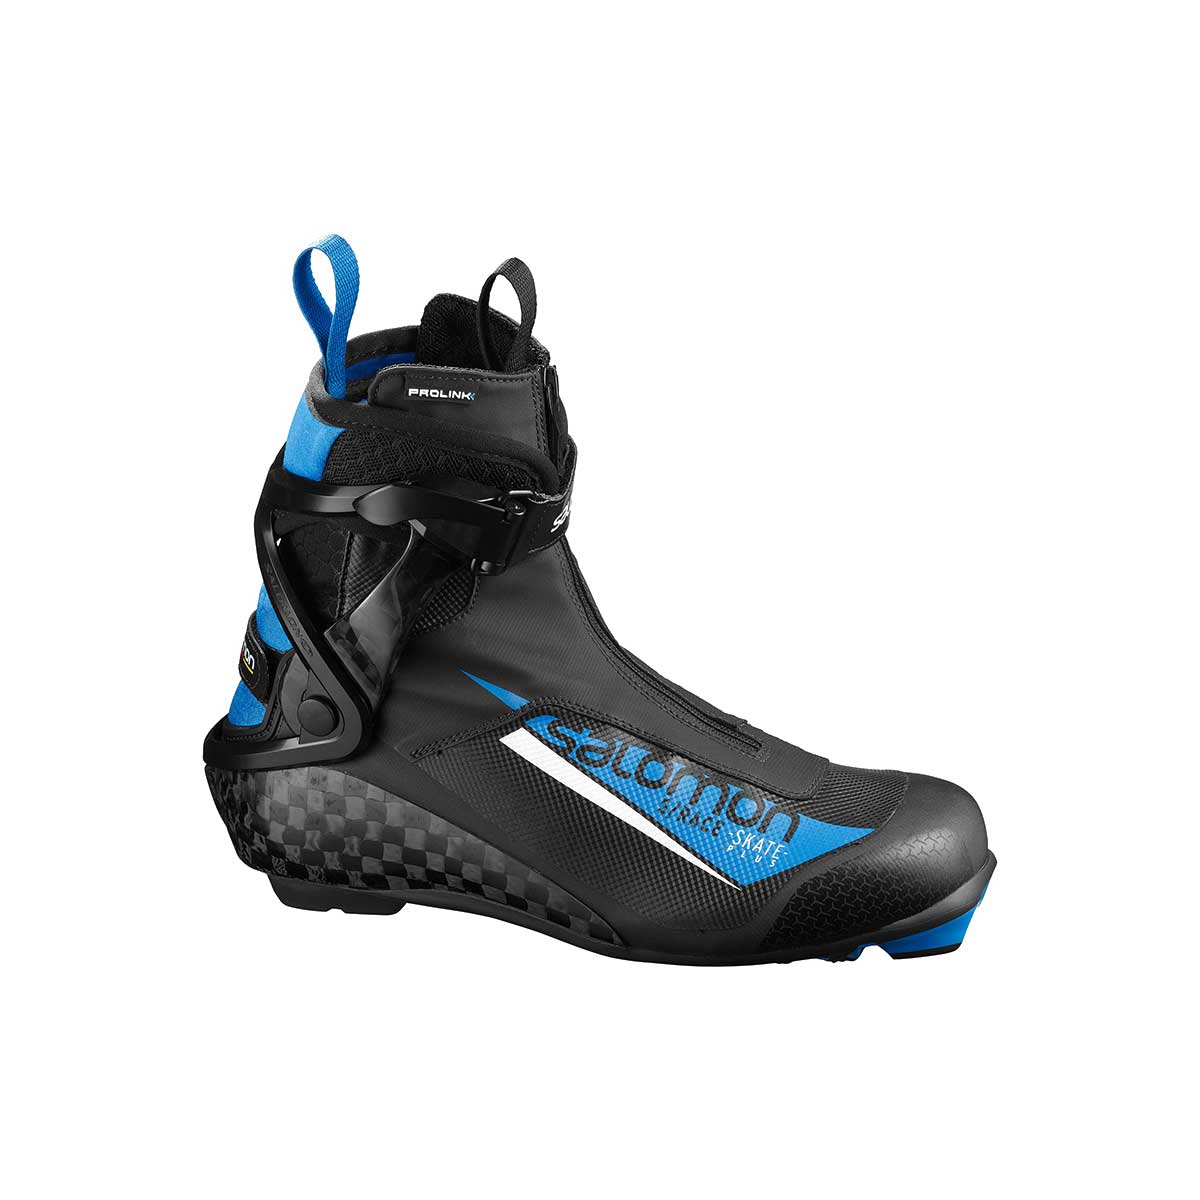 Salomon S Race Skate Plus Prolink Shoes in Black